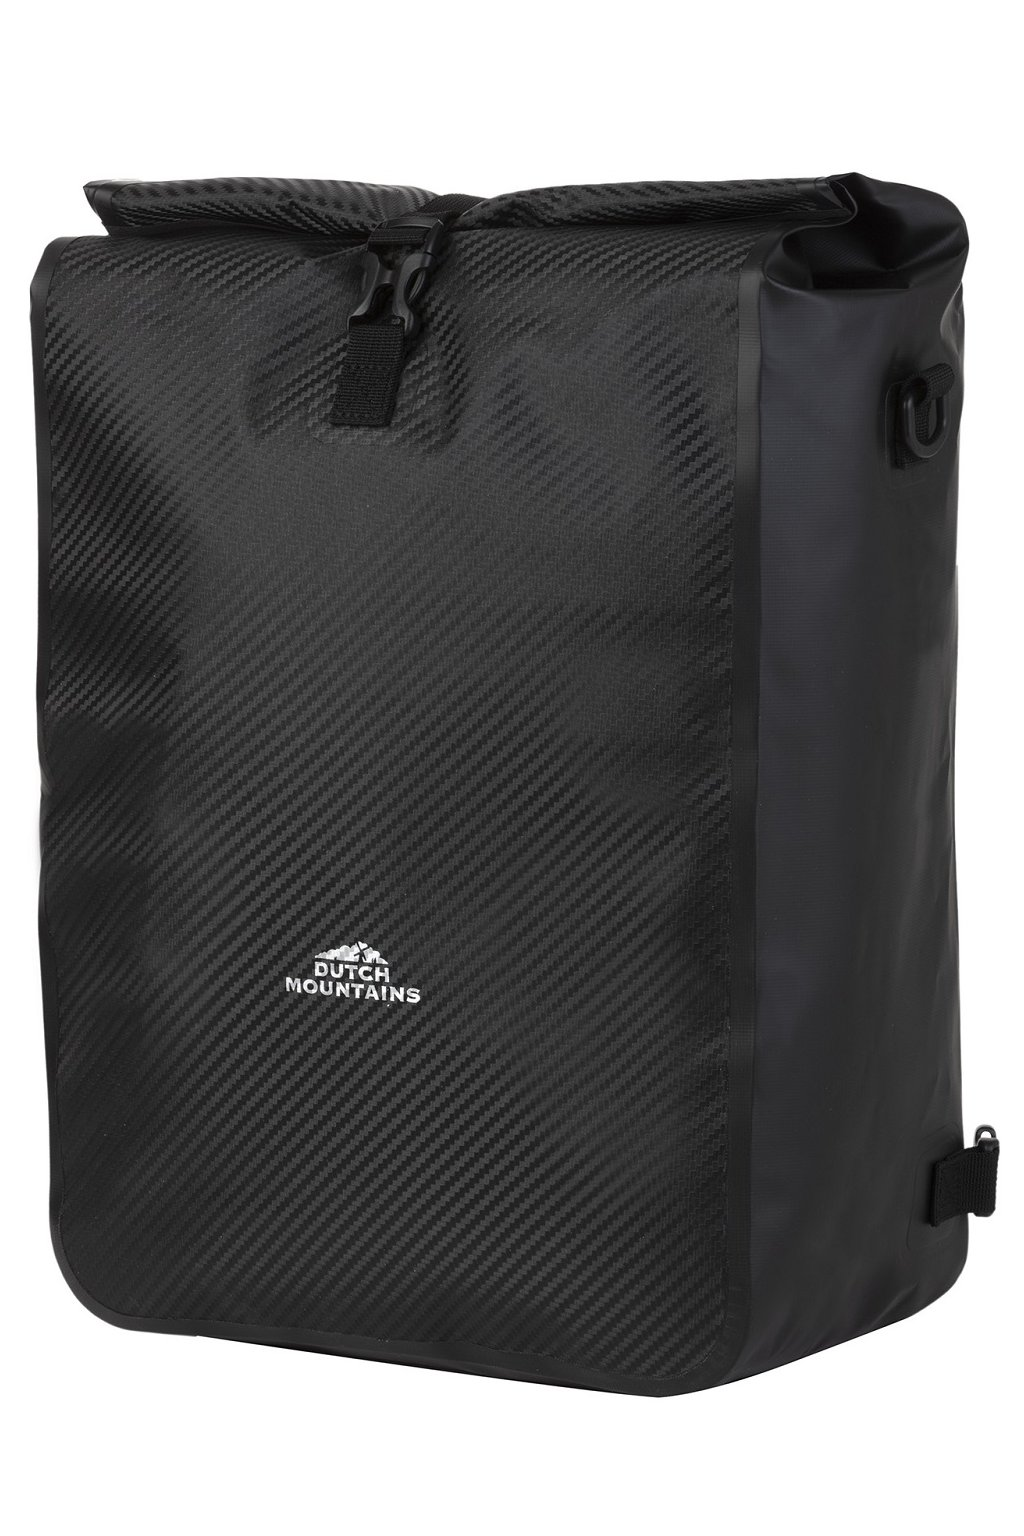 kufrland dutchmountains dmbicyclebags backpack (2)